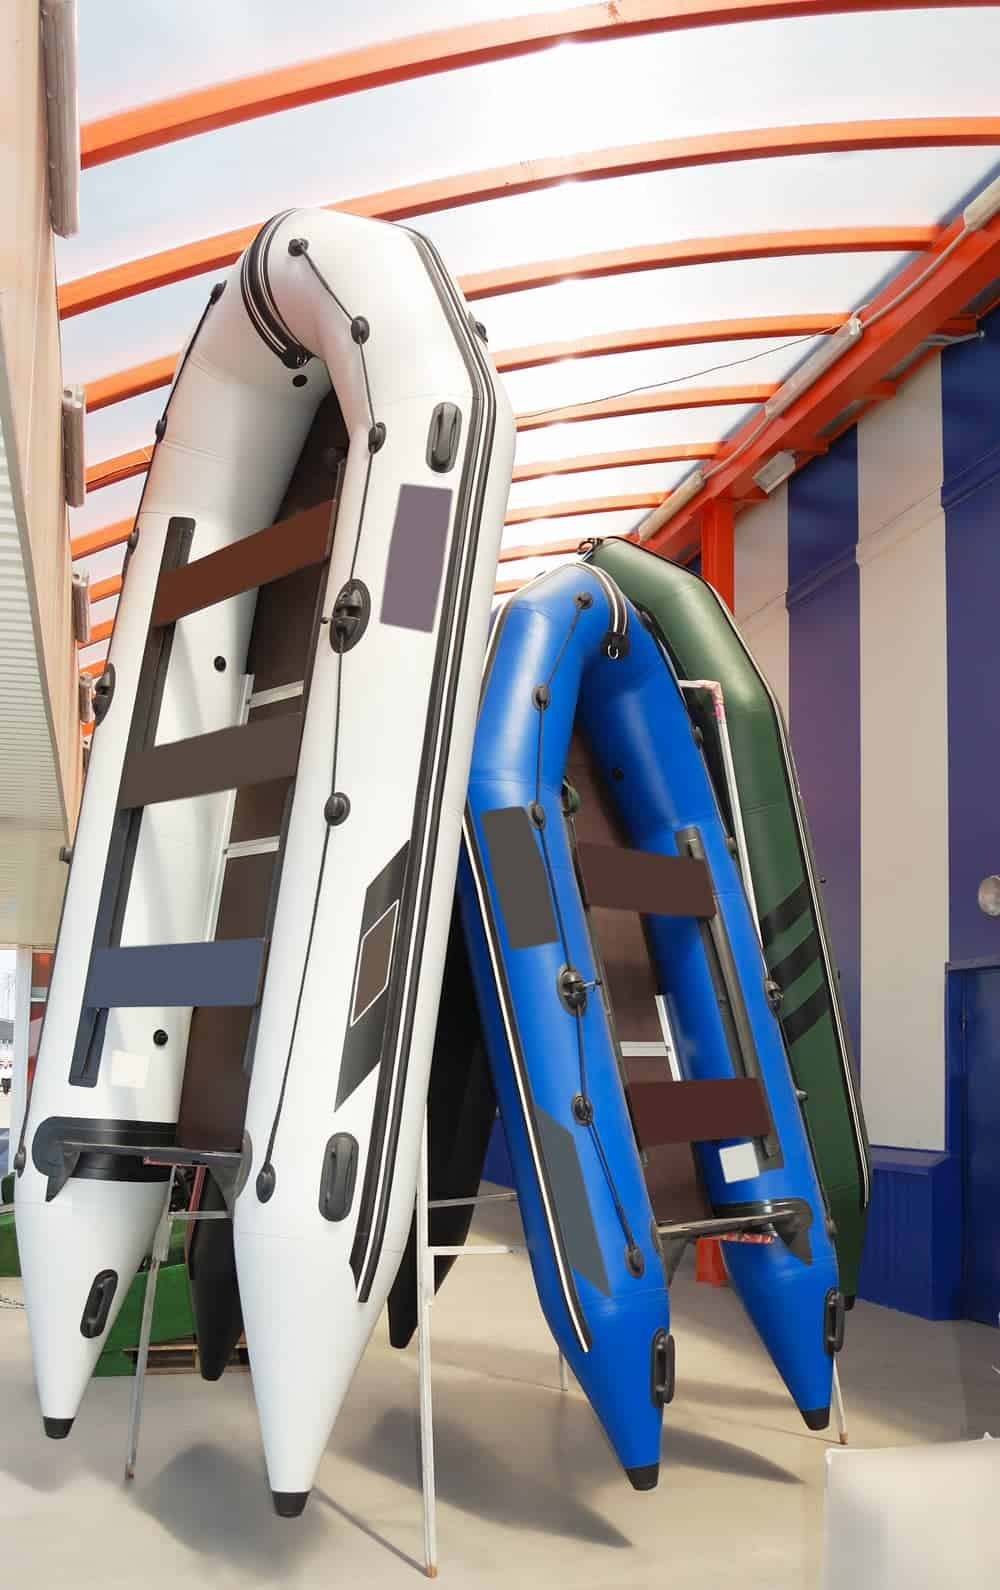 colorful inflatable boats made of Hypalon and PVC material